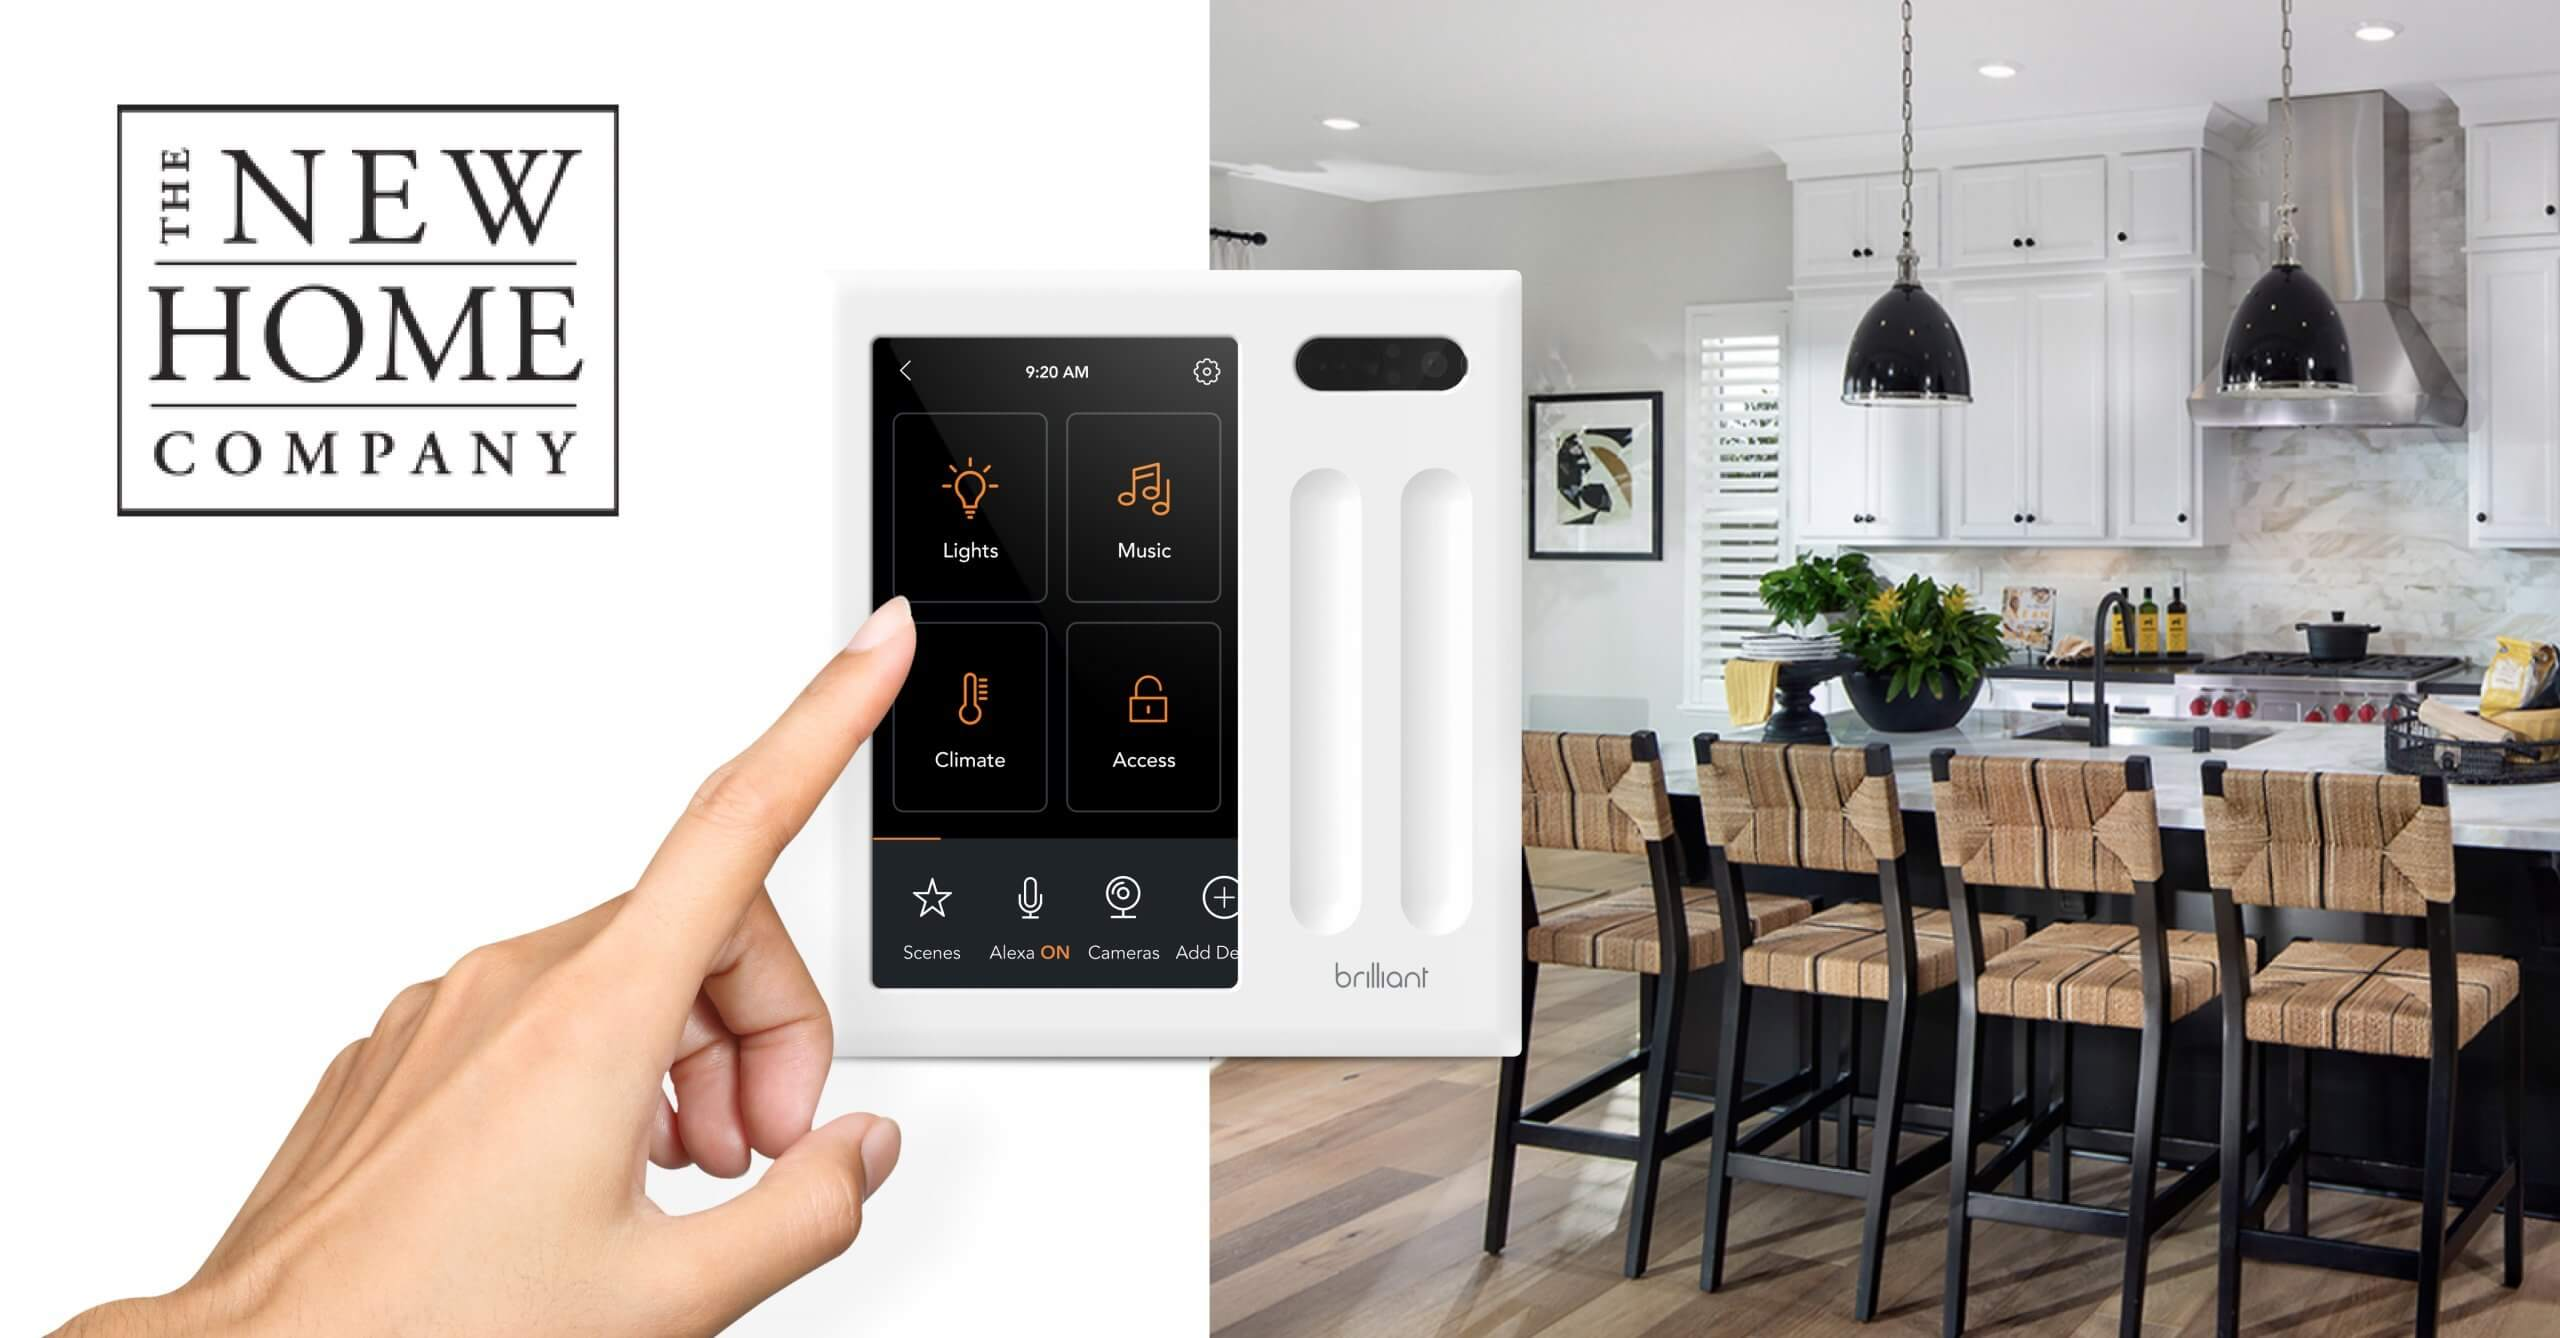 """Titled """"The New Home Company"""" image of hand selecting """"lights"""" option on a white brilliant smart home panel that also includes music, climate, and alarm as options. Image to the right is of a modern kitchen with island and pendant lighting turned on."""